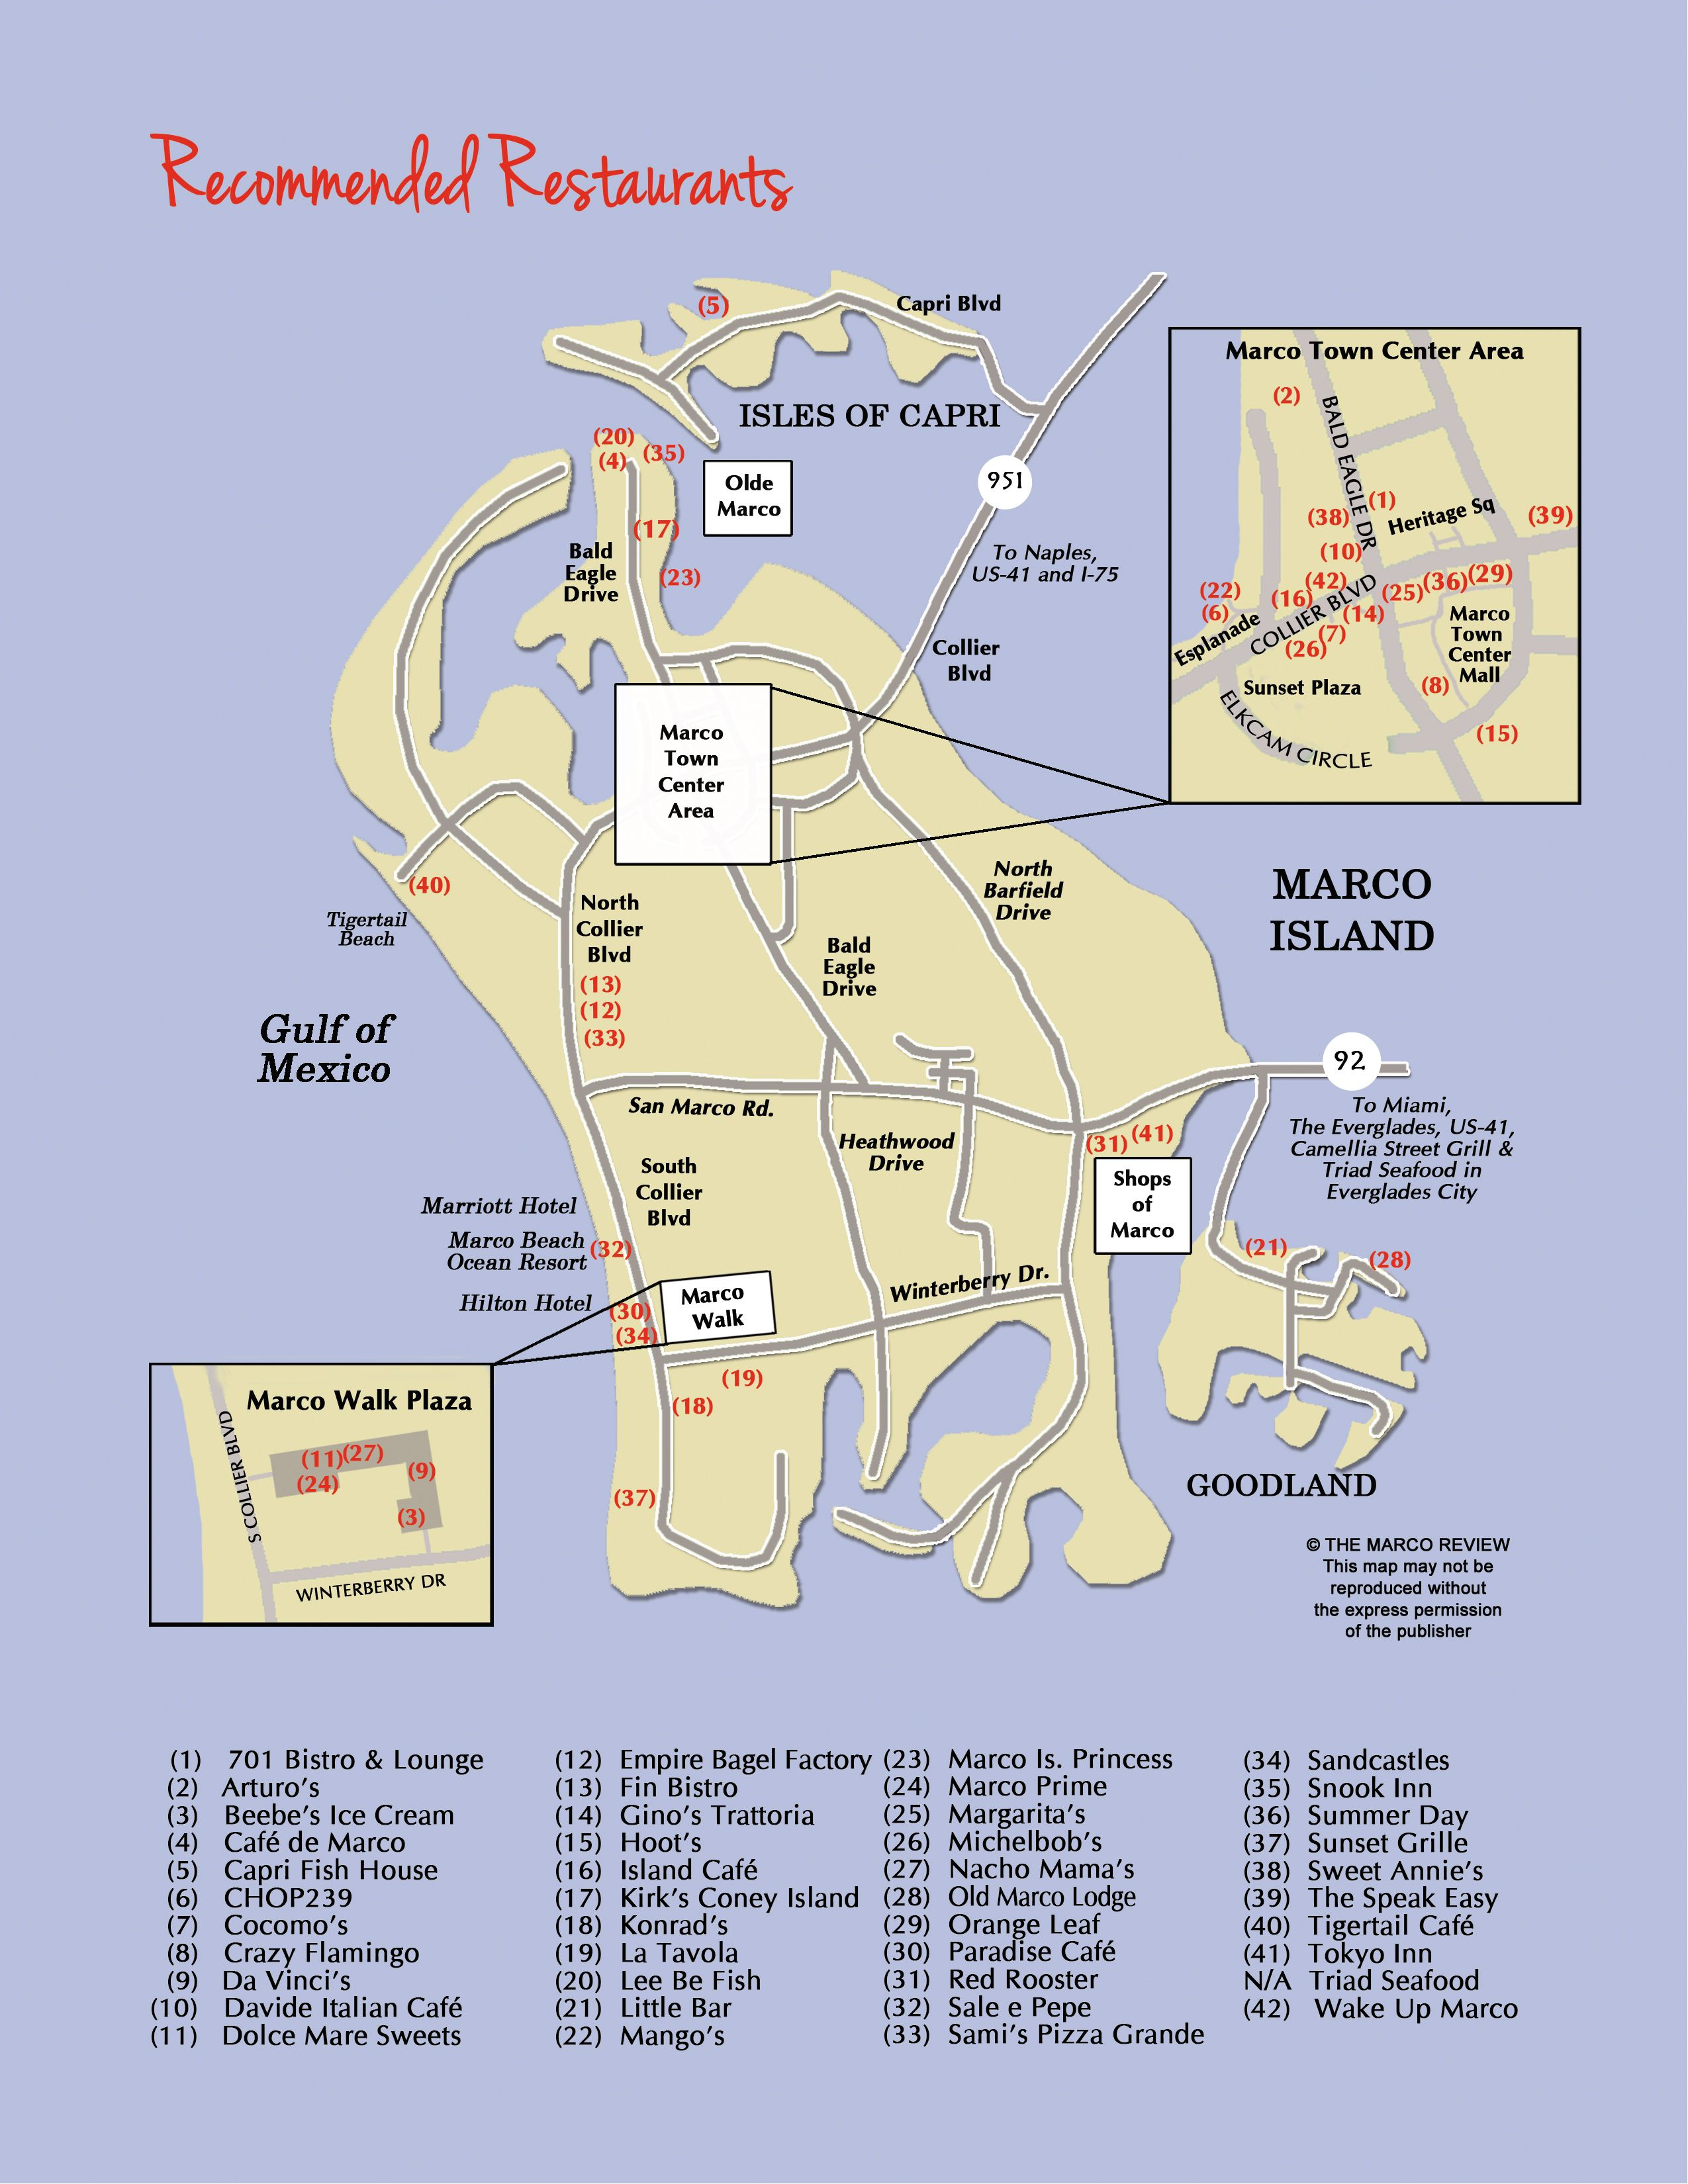 Map Of Marco Island Florida.Restaurant Map Of Marco Island Florida Restaurants Oh The